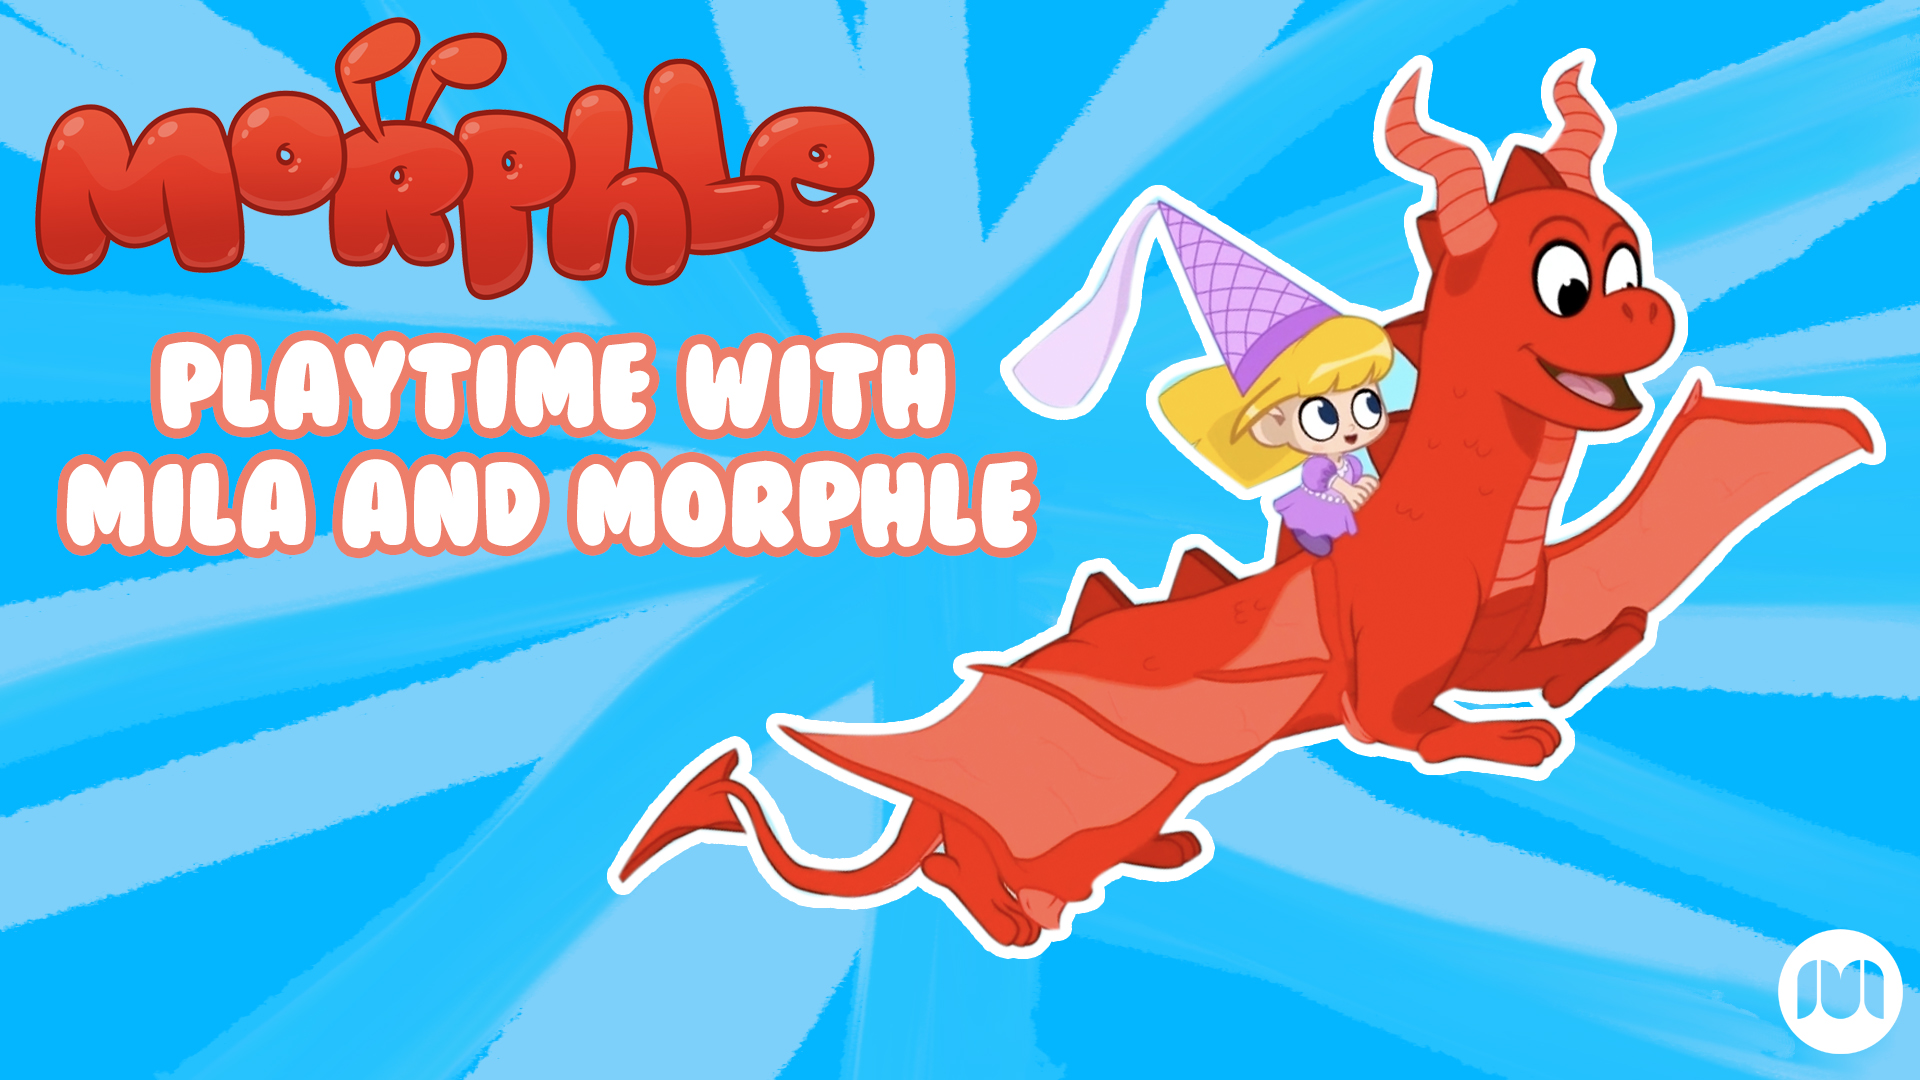 Morphle Playtime With Mila And Morphle Tv Episode 2019 Imdb We are a motion graphics studio located in montevideo, uruguay. mila and morphle tv episode 2019 imdb